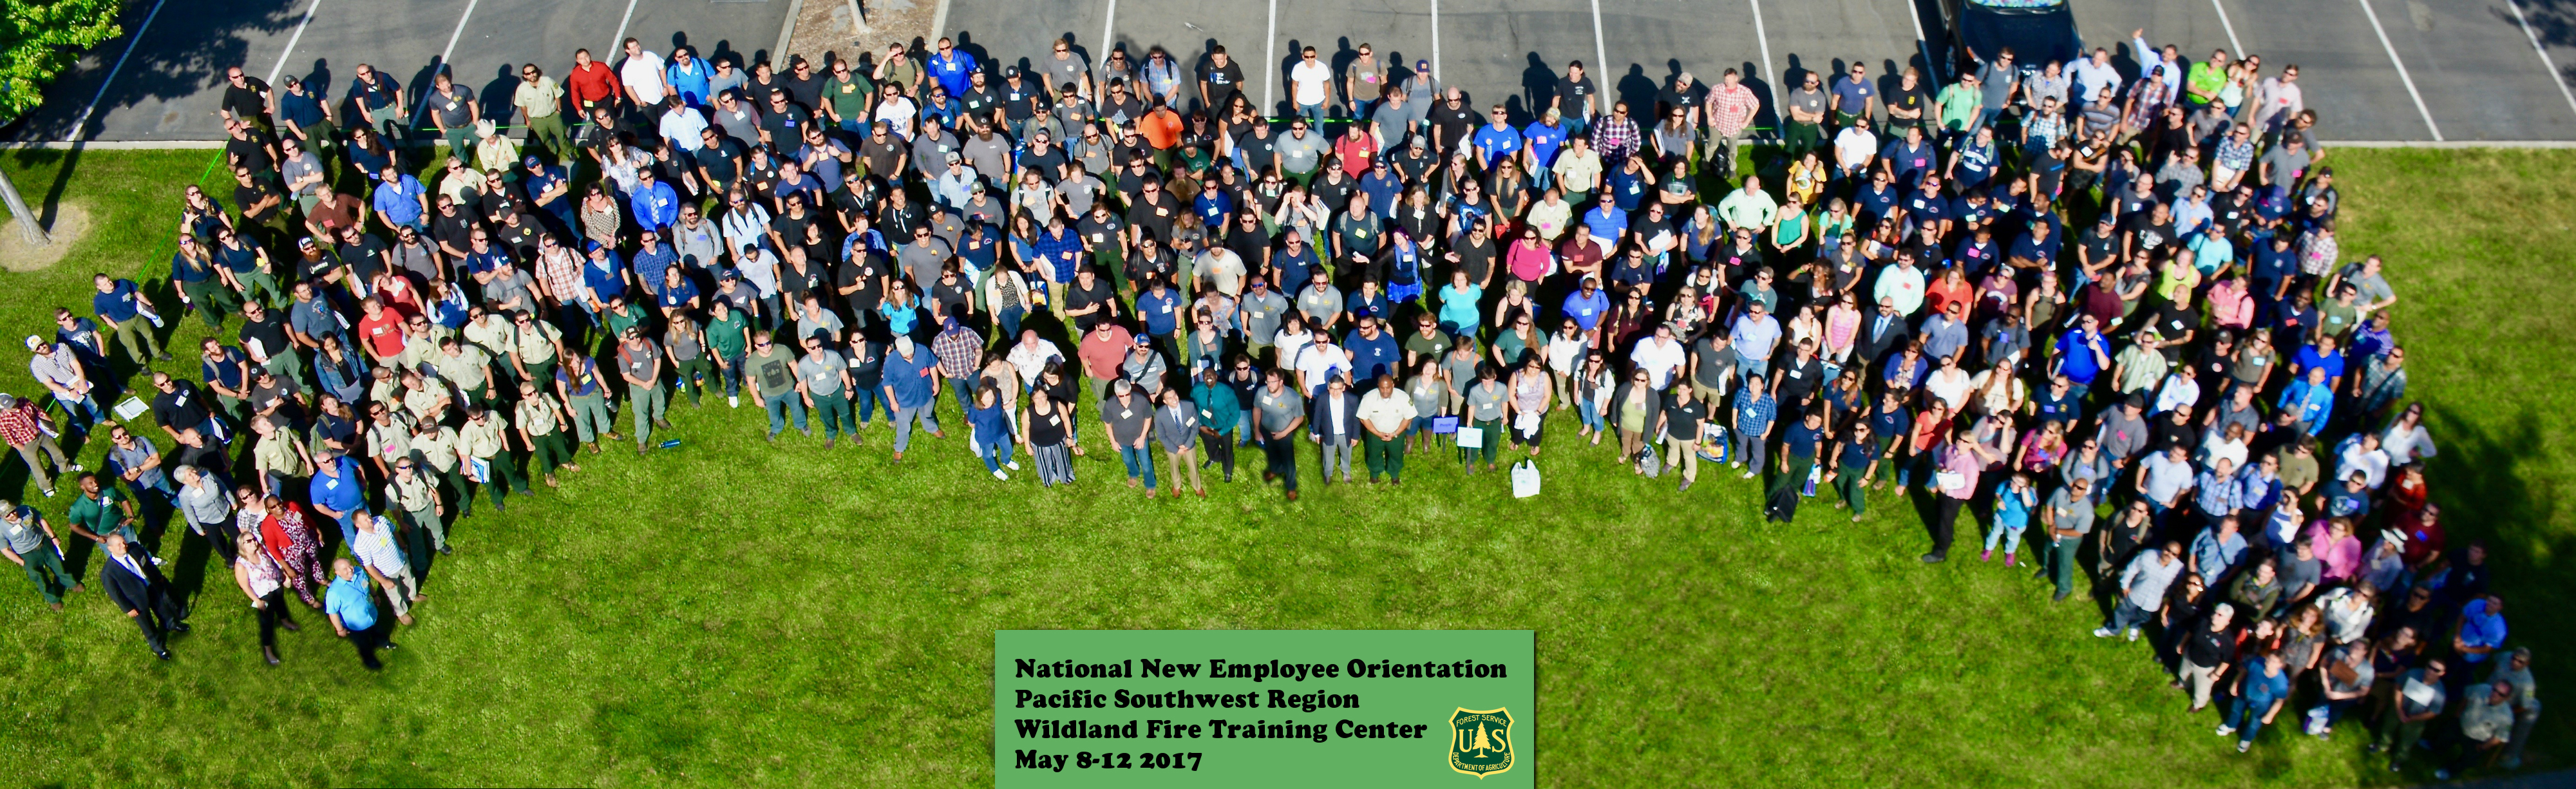 Aerial group photo from the National New Employee Orientation, PSR Wildland Fire Training Center